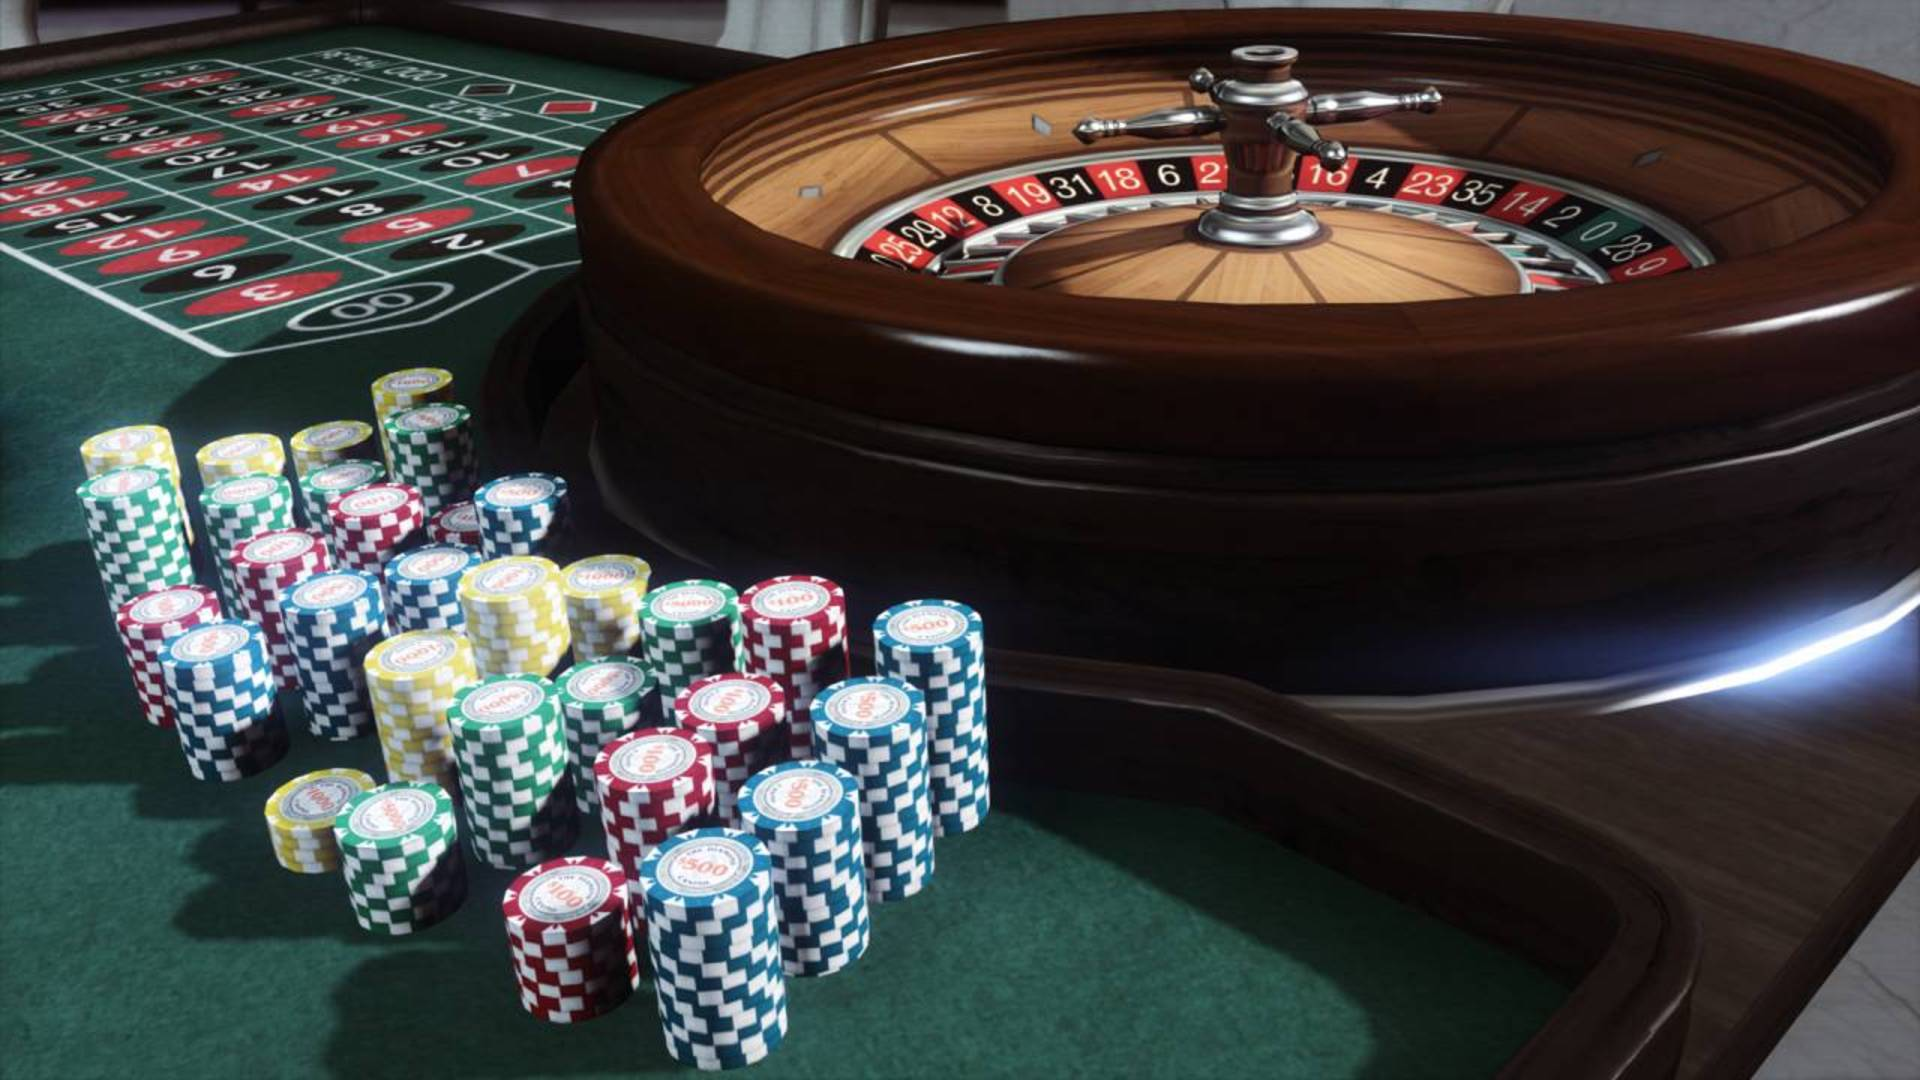 Find Free Games At Top Ranked Online Casinos